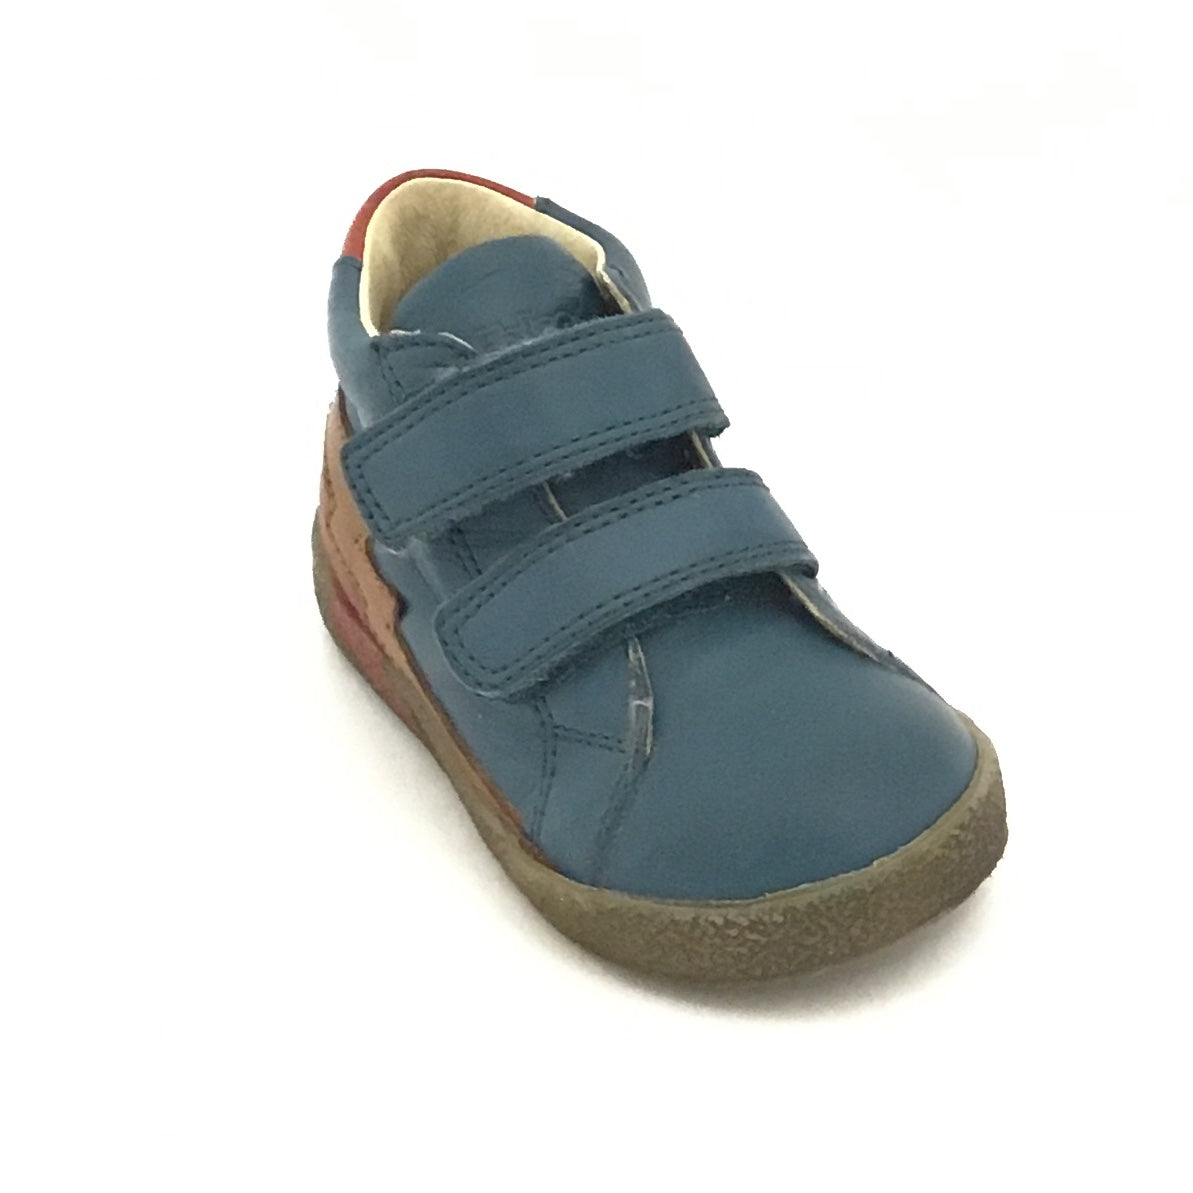 Falcotto Denim Shoe with Double Velcro